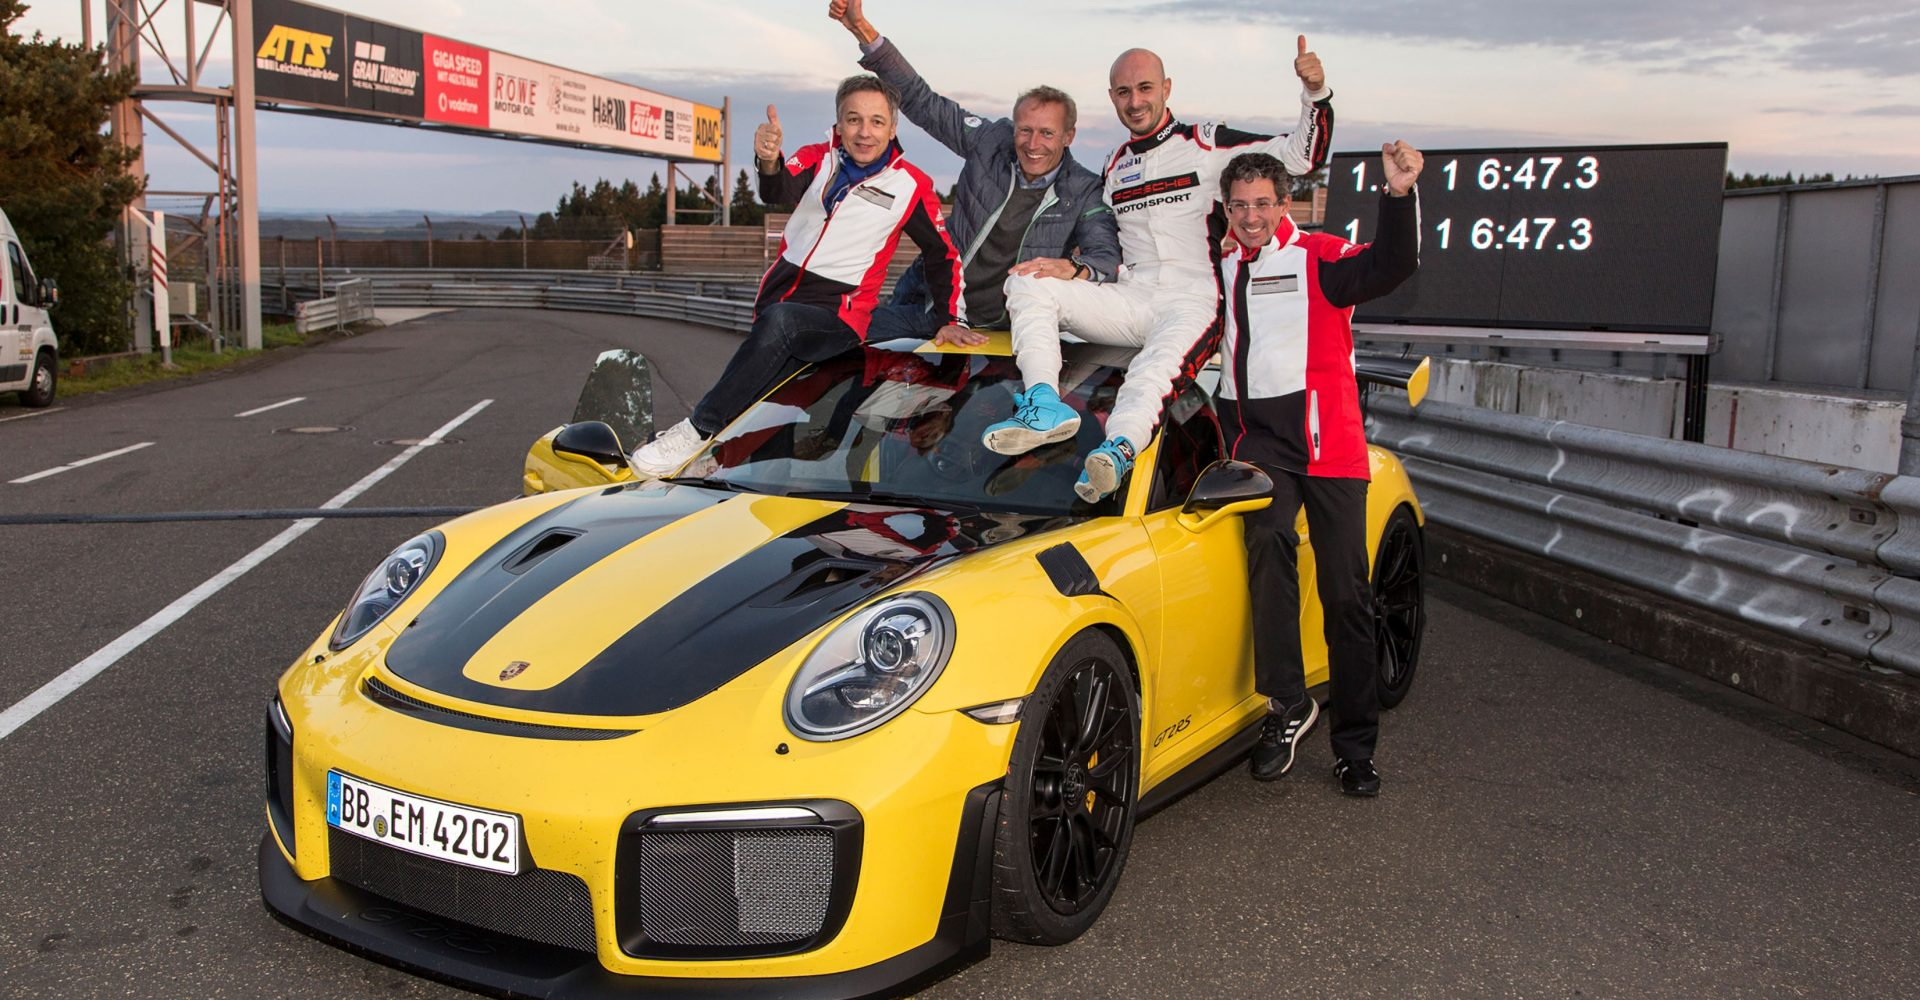 The Porsche 911 GT2 RS just claimed a Nurburgring record – and it's a quick one!